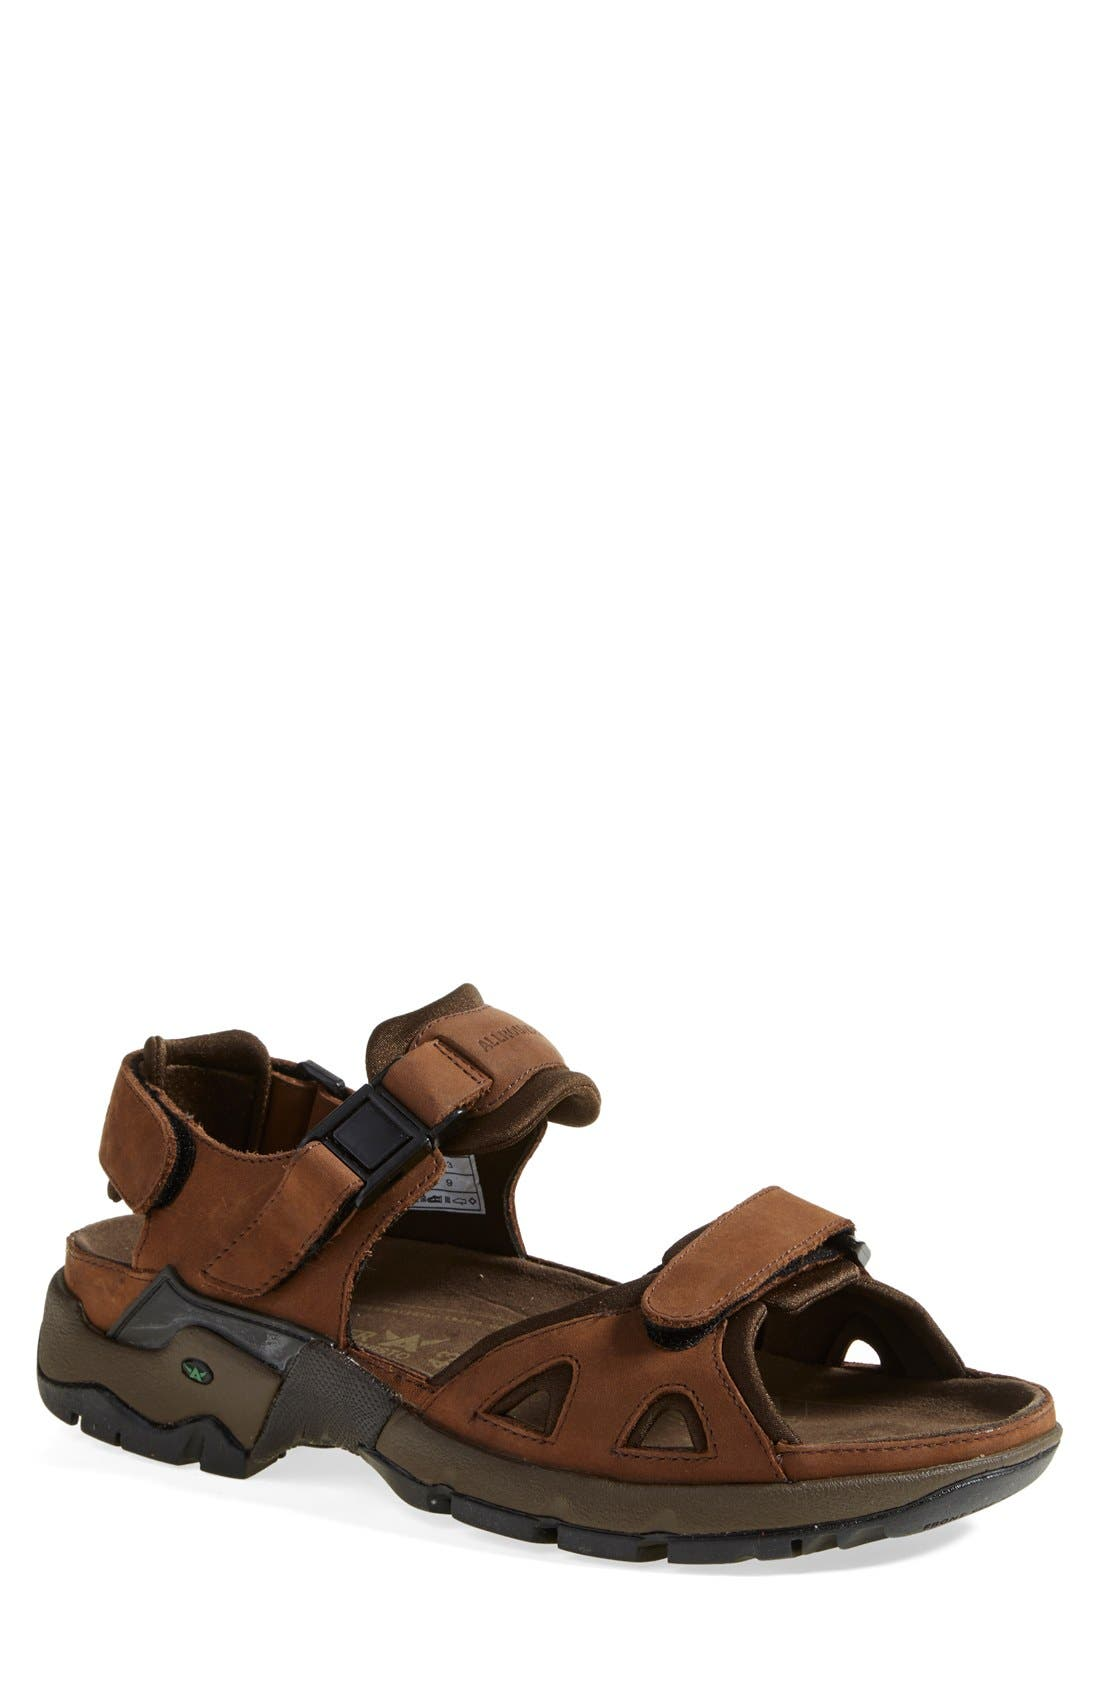 Alternate Image 1 Selected - Allrounder by Mephisto 'Alligator' Sandal (Men)